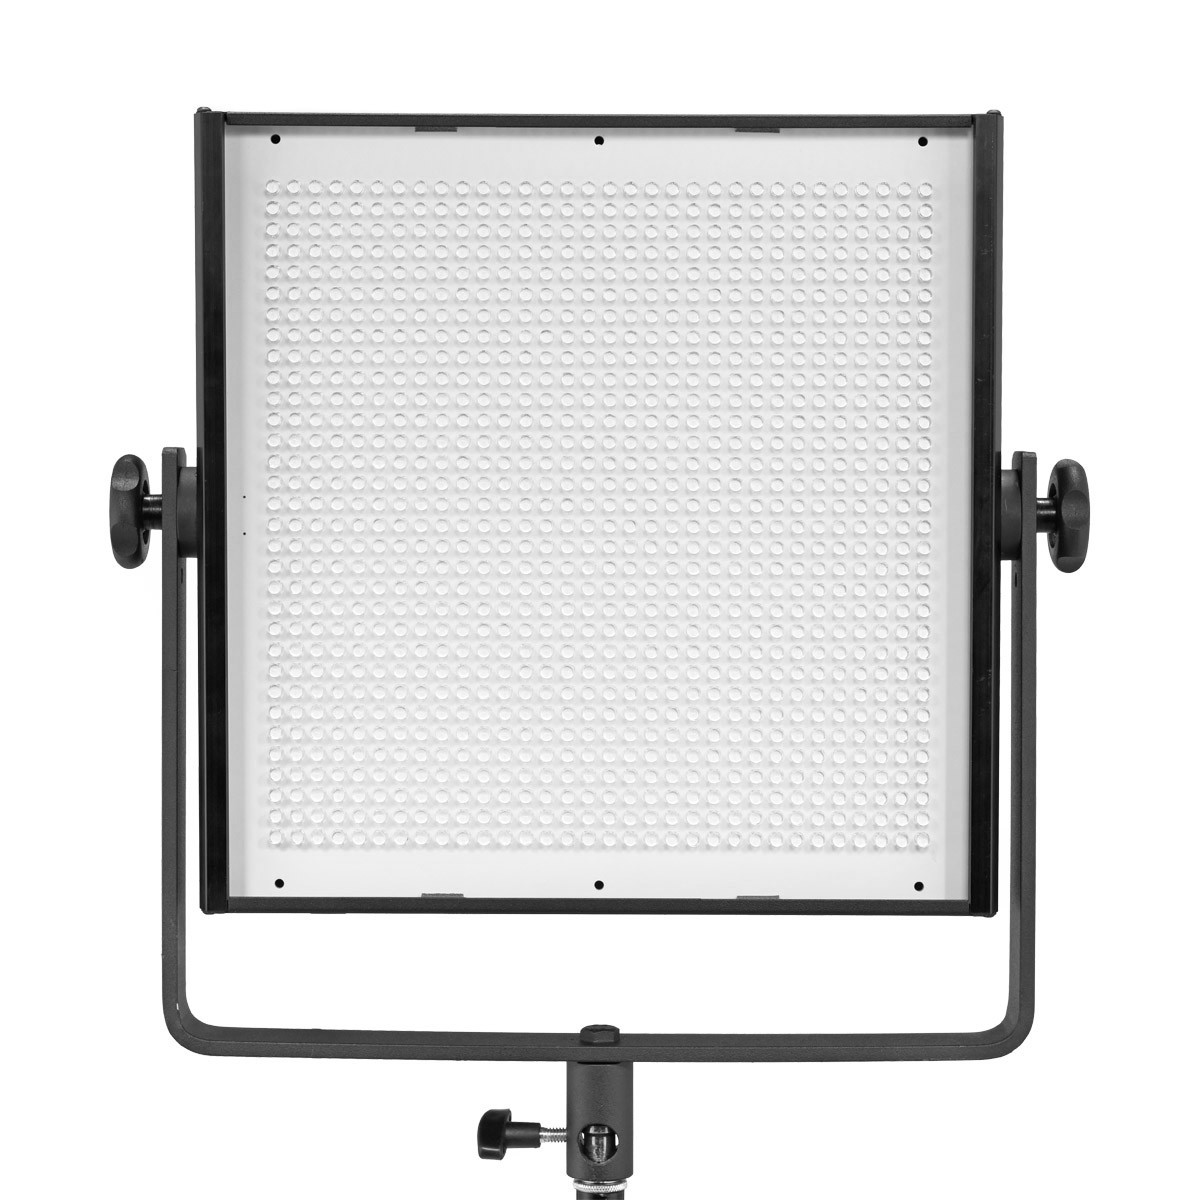 MicroBeam 1024 Panel LED - High CRI Video Photo Constant Light Source  Front